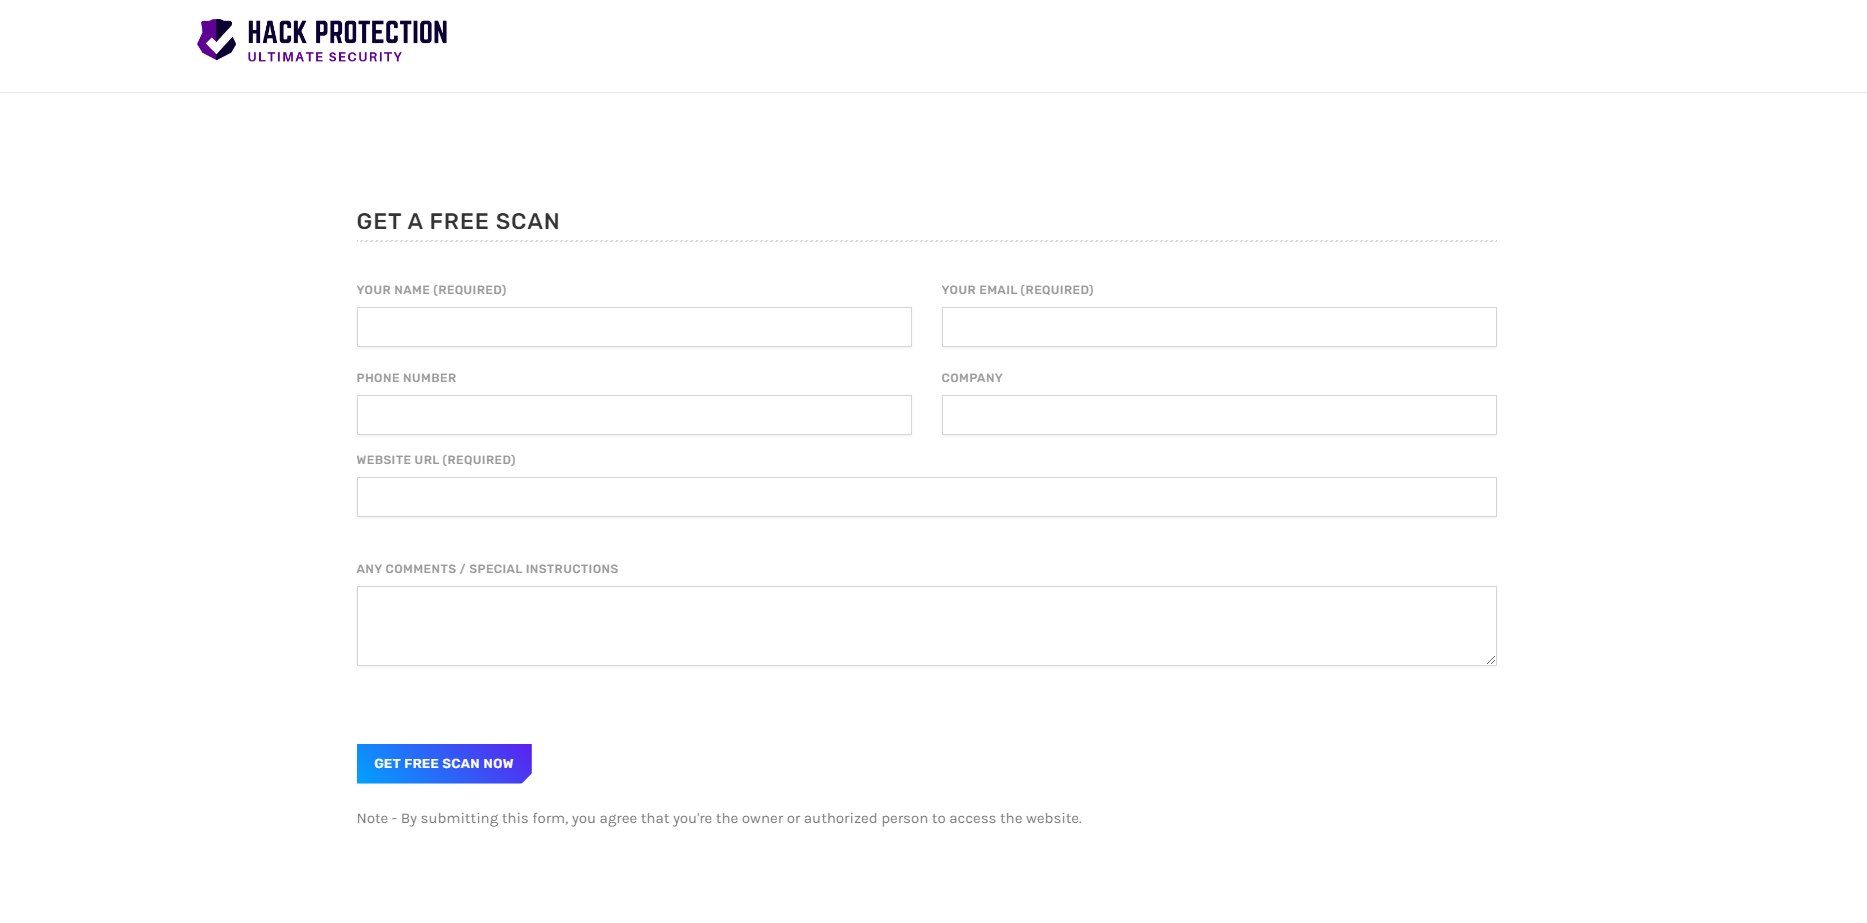 hack protection free scan